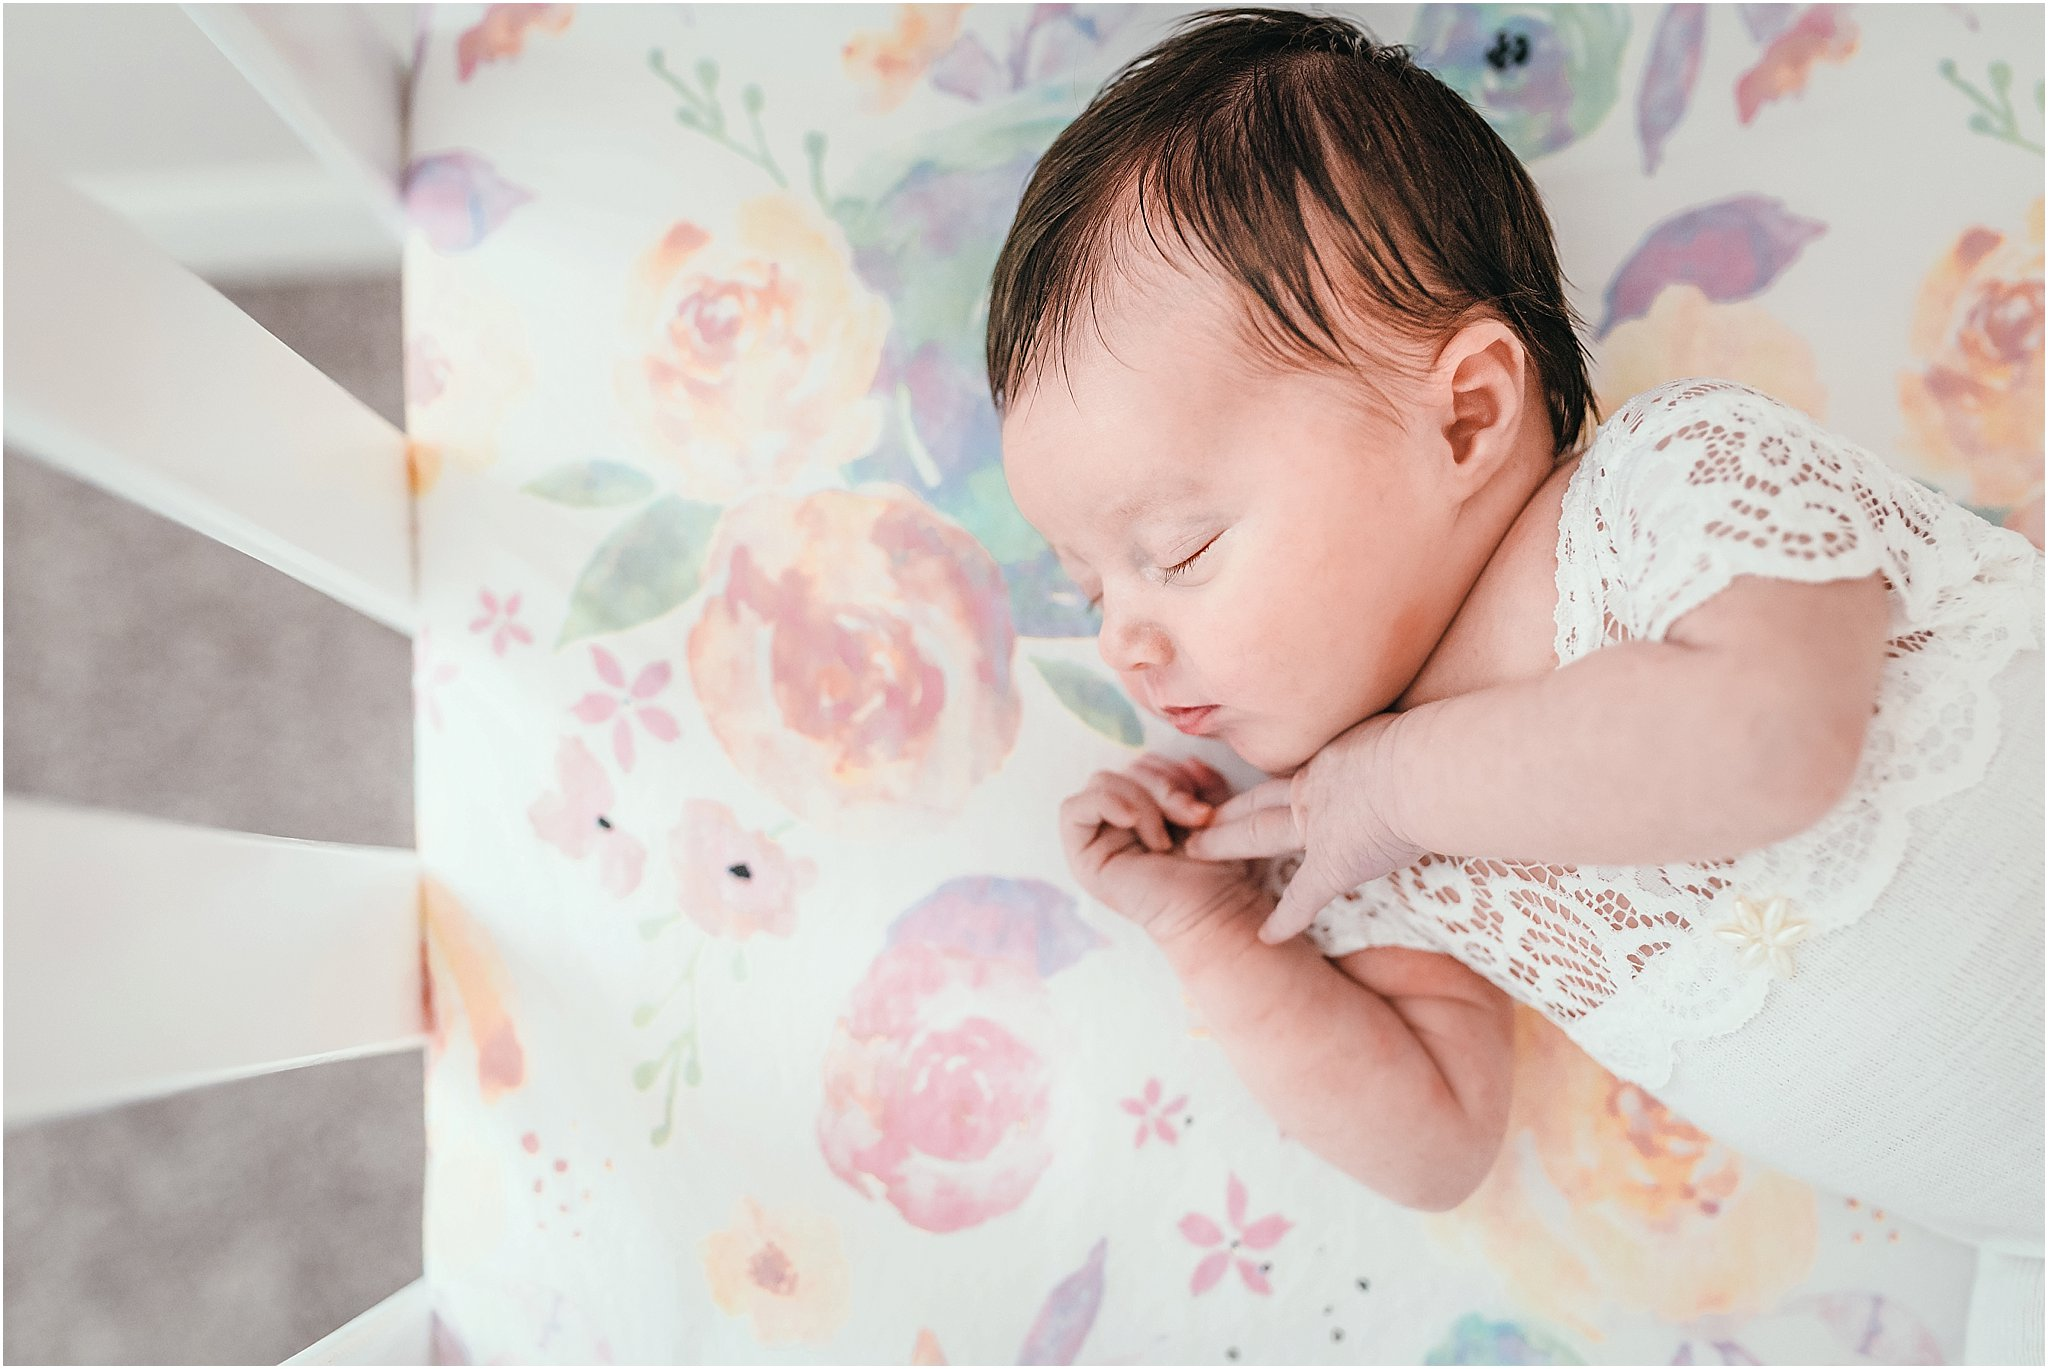 Ashley_Rogers_Photography_Orlando_Non-Posed_Newborn_Family_Lifestyle_Photographer_0414.jpg